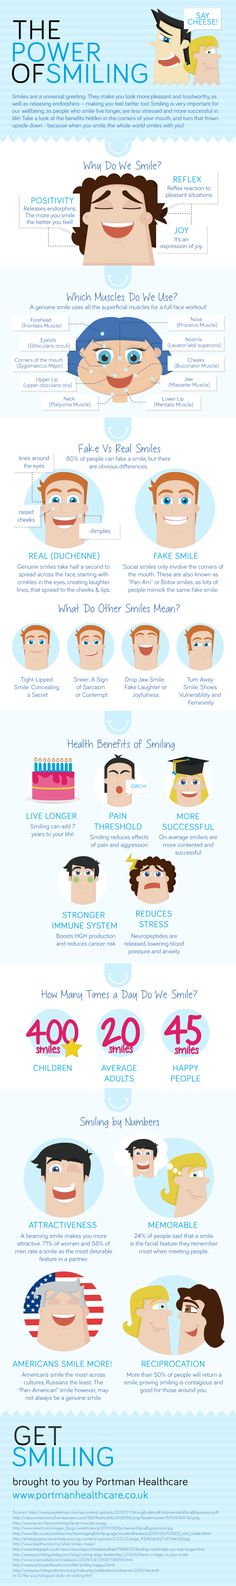 """""""Smiling — the purest expression of happiness — has the ability to regulate our blood pressure, strengthen our immune system, lower the risk of cancer, increase our life by seven years, and provide inner peace and satisfaction. The good news is that it doesn't cost a thing."""" What's Getting in your Way: https://www.pinterest.com/addfreesources/whats-getting-in-your-way-psychological-help/"""